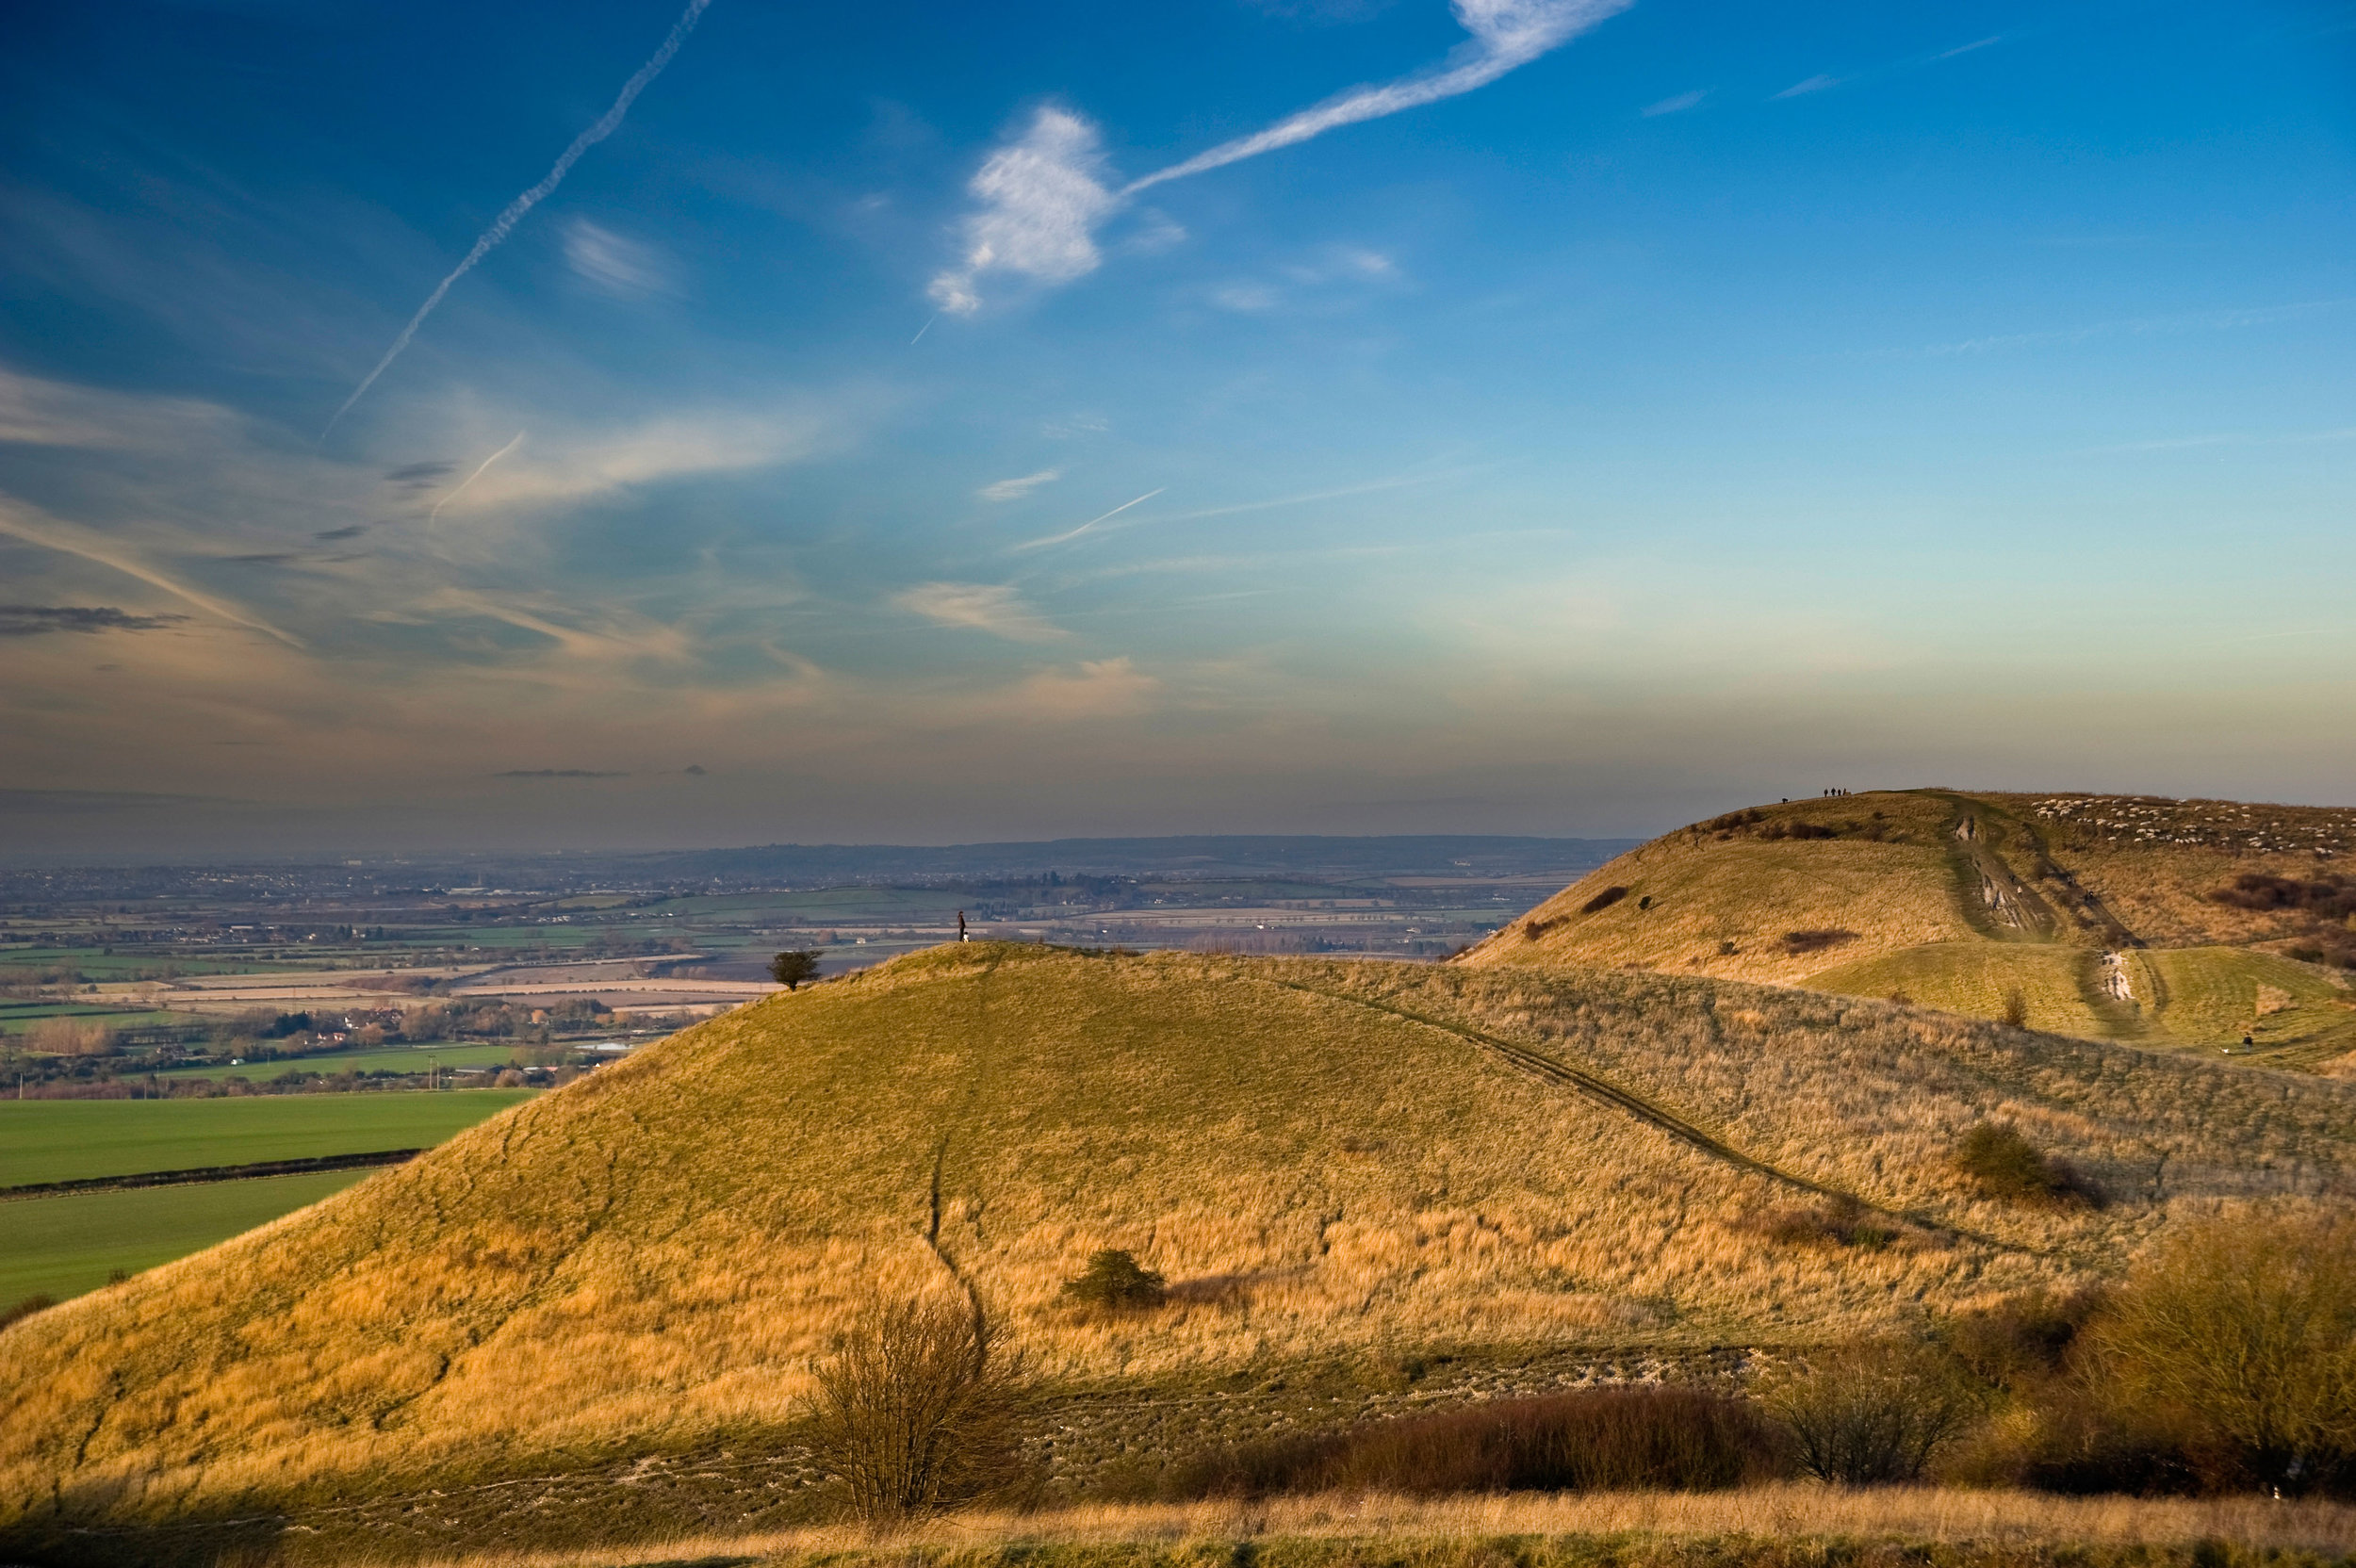 Ivinghoe Beacon at the end of The Ridgeway, (Steve Speller / Alamy Stock Photo*)